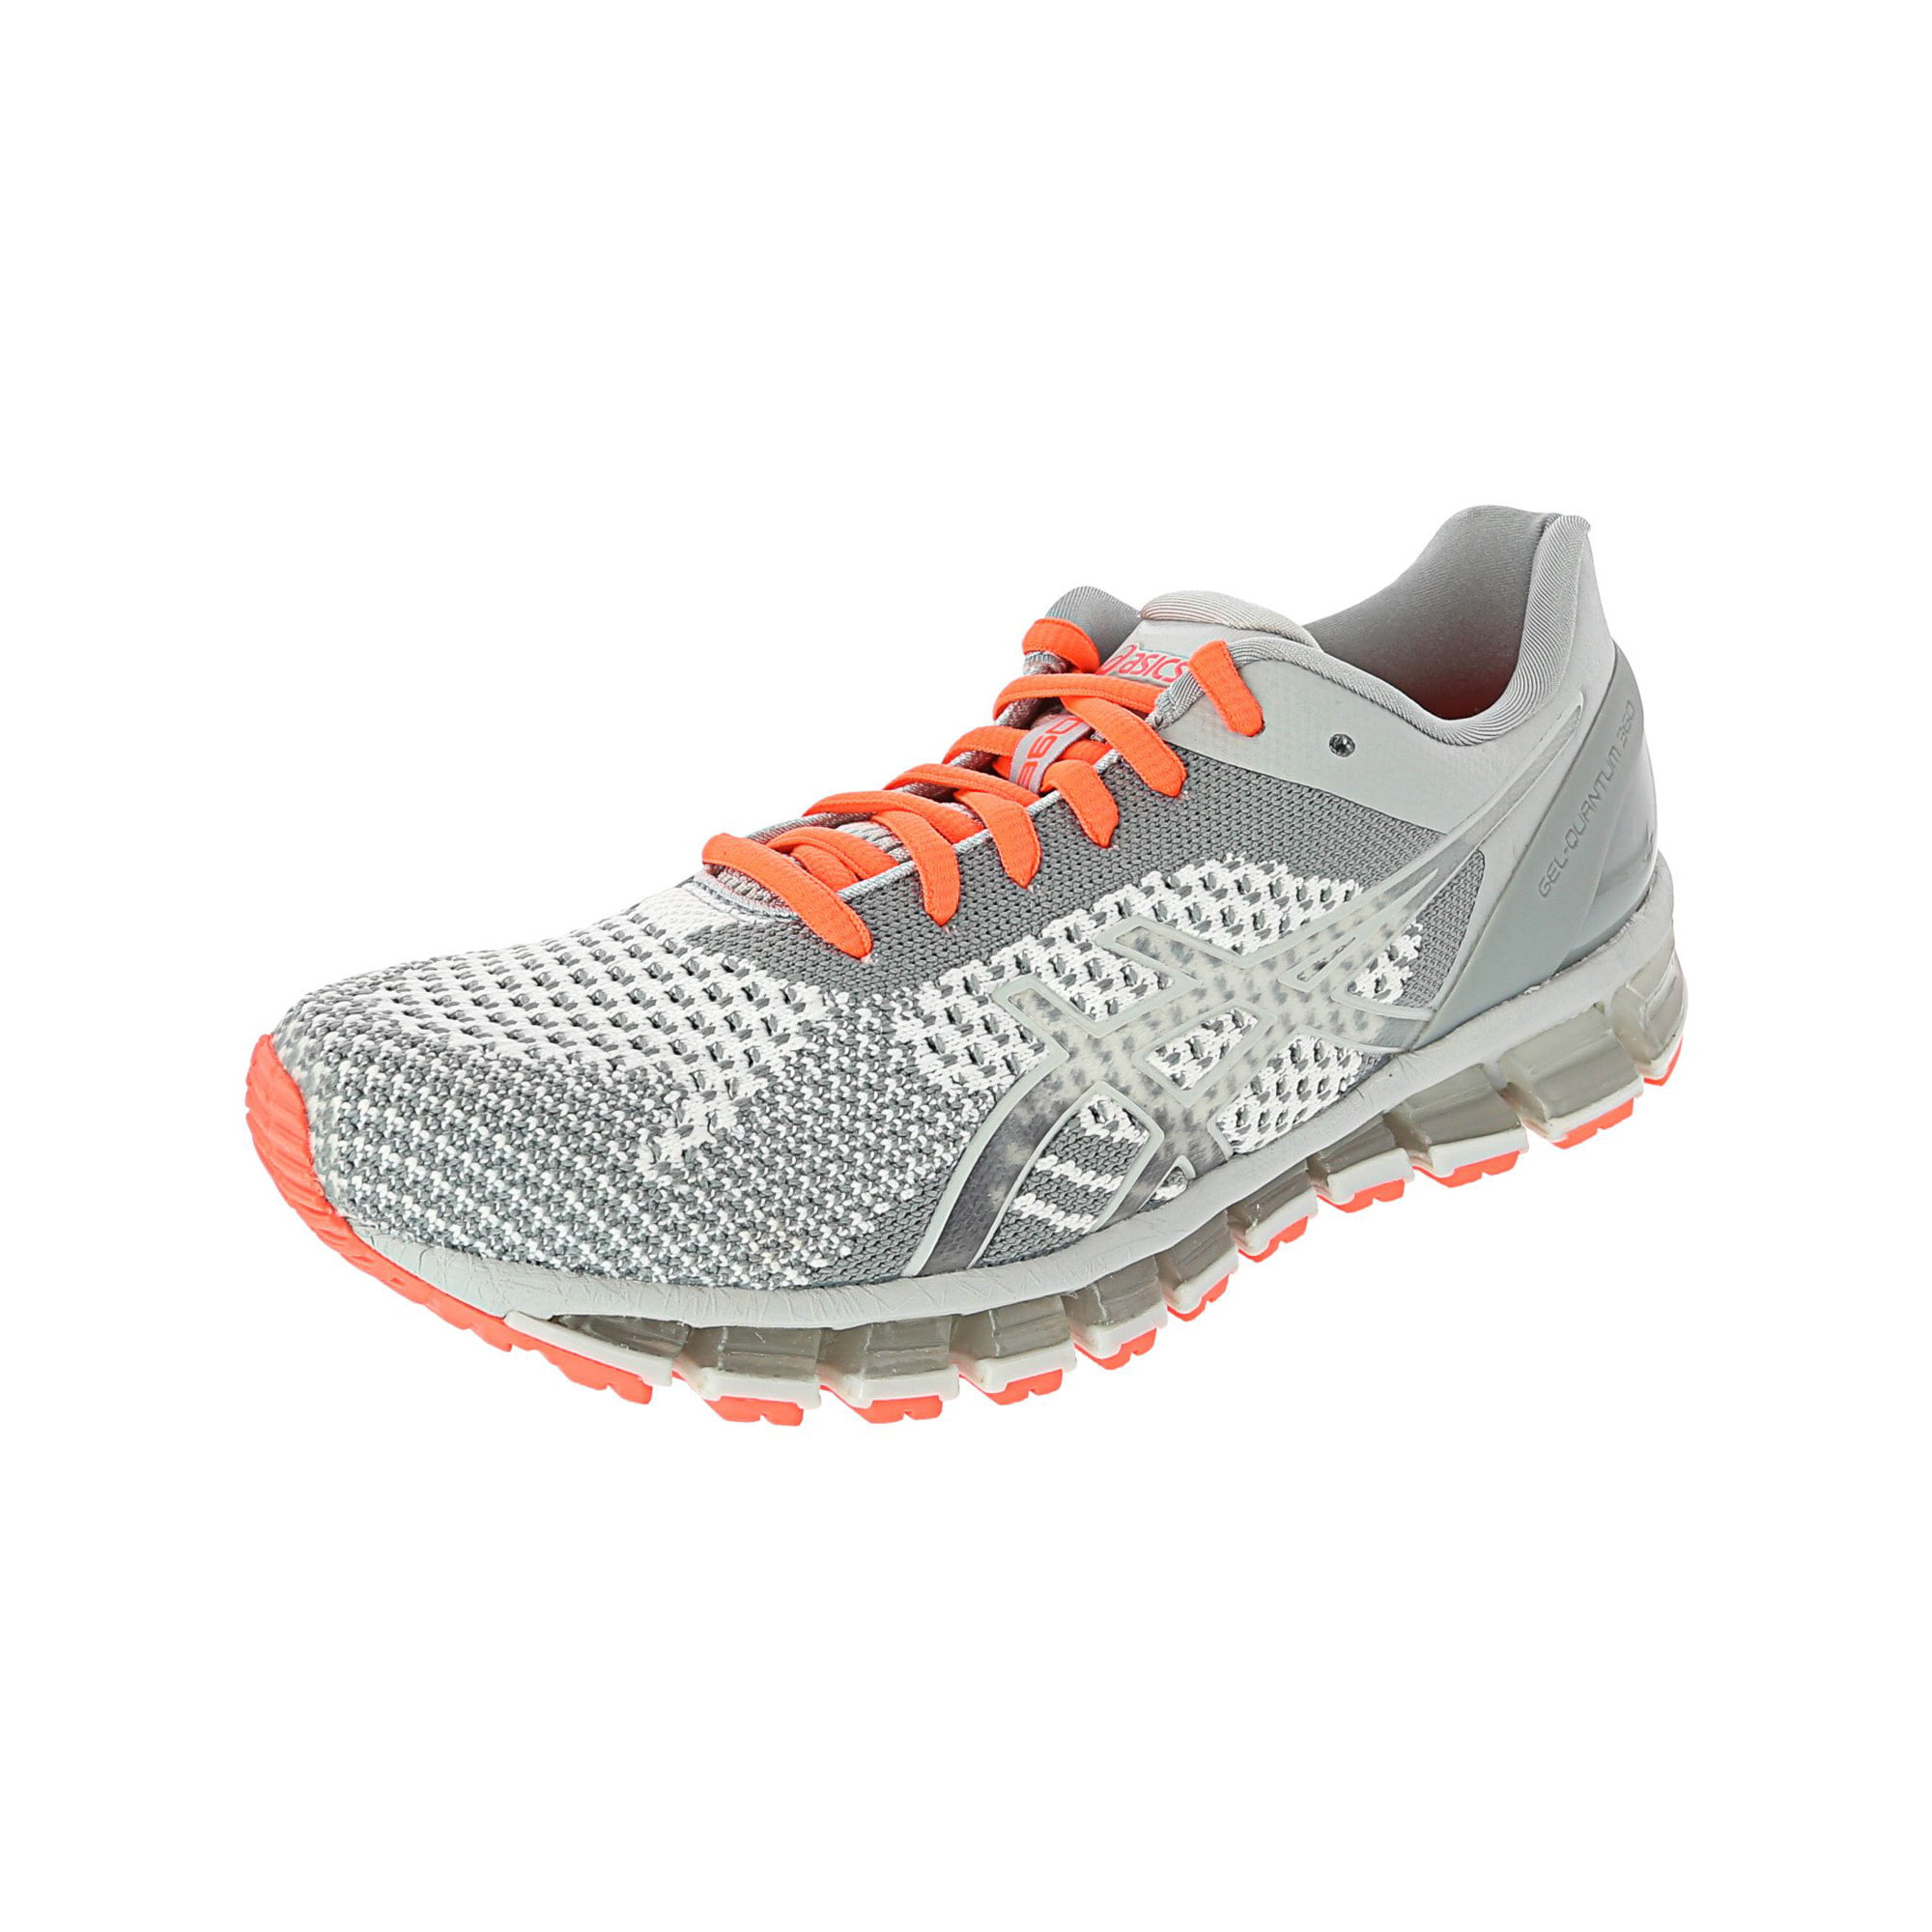 wholesale dealer 08f54 b8921 Asics Women's Gel-Quantum 360 Knit Ankle-High Running Shoe - 8M - Mid Grey  / Glacier Grey / Flash Coral